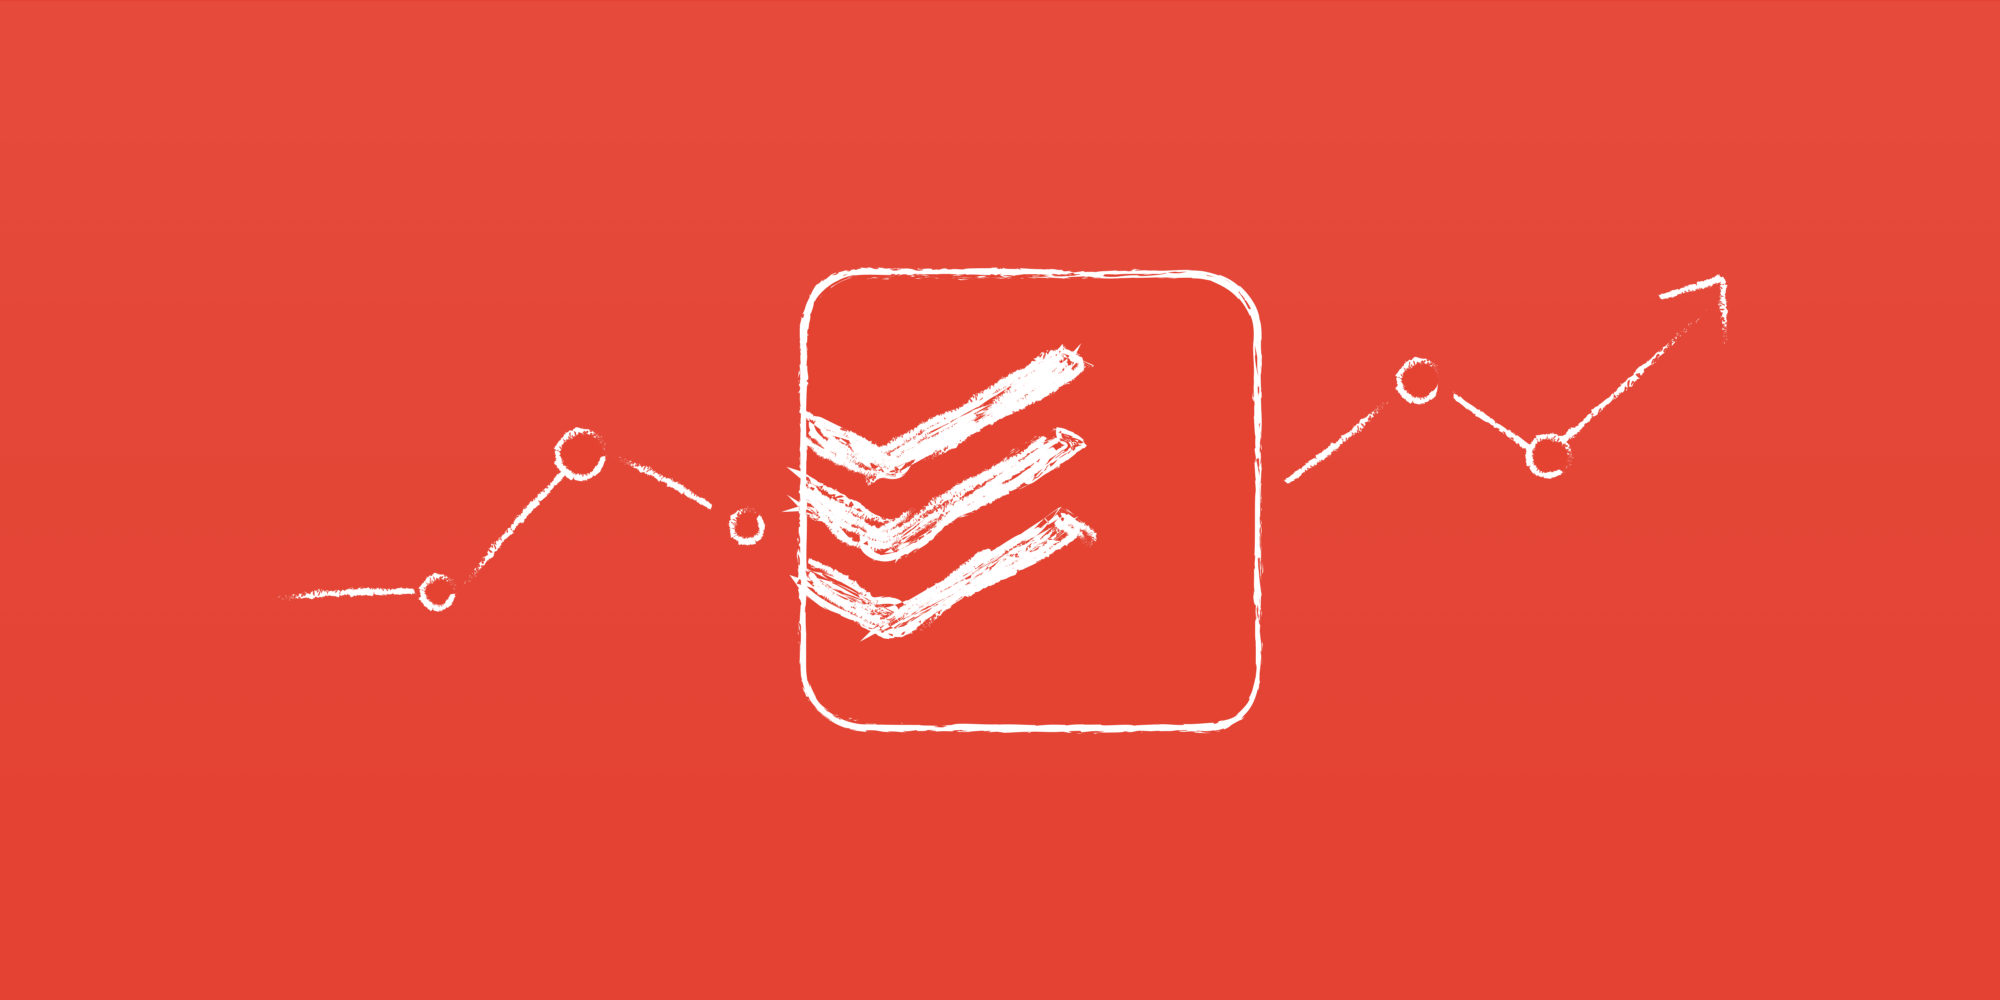 todoist project templates - an educator s guide to todoist ambition balance